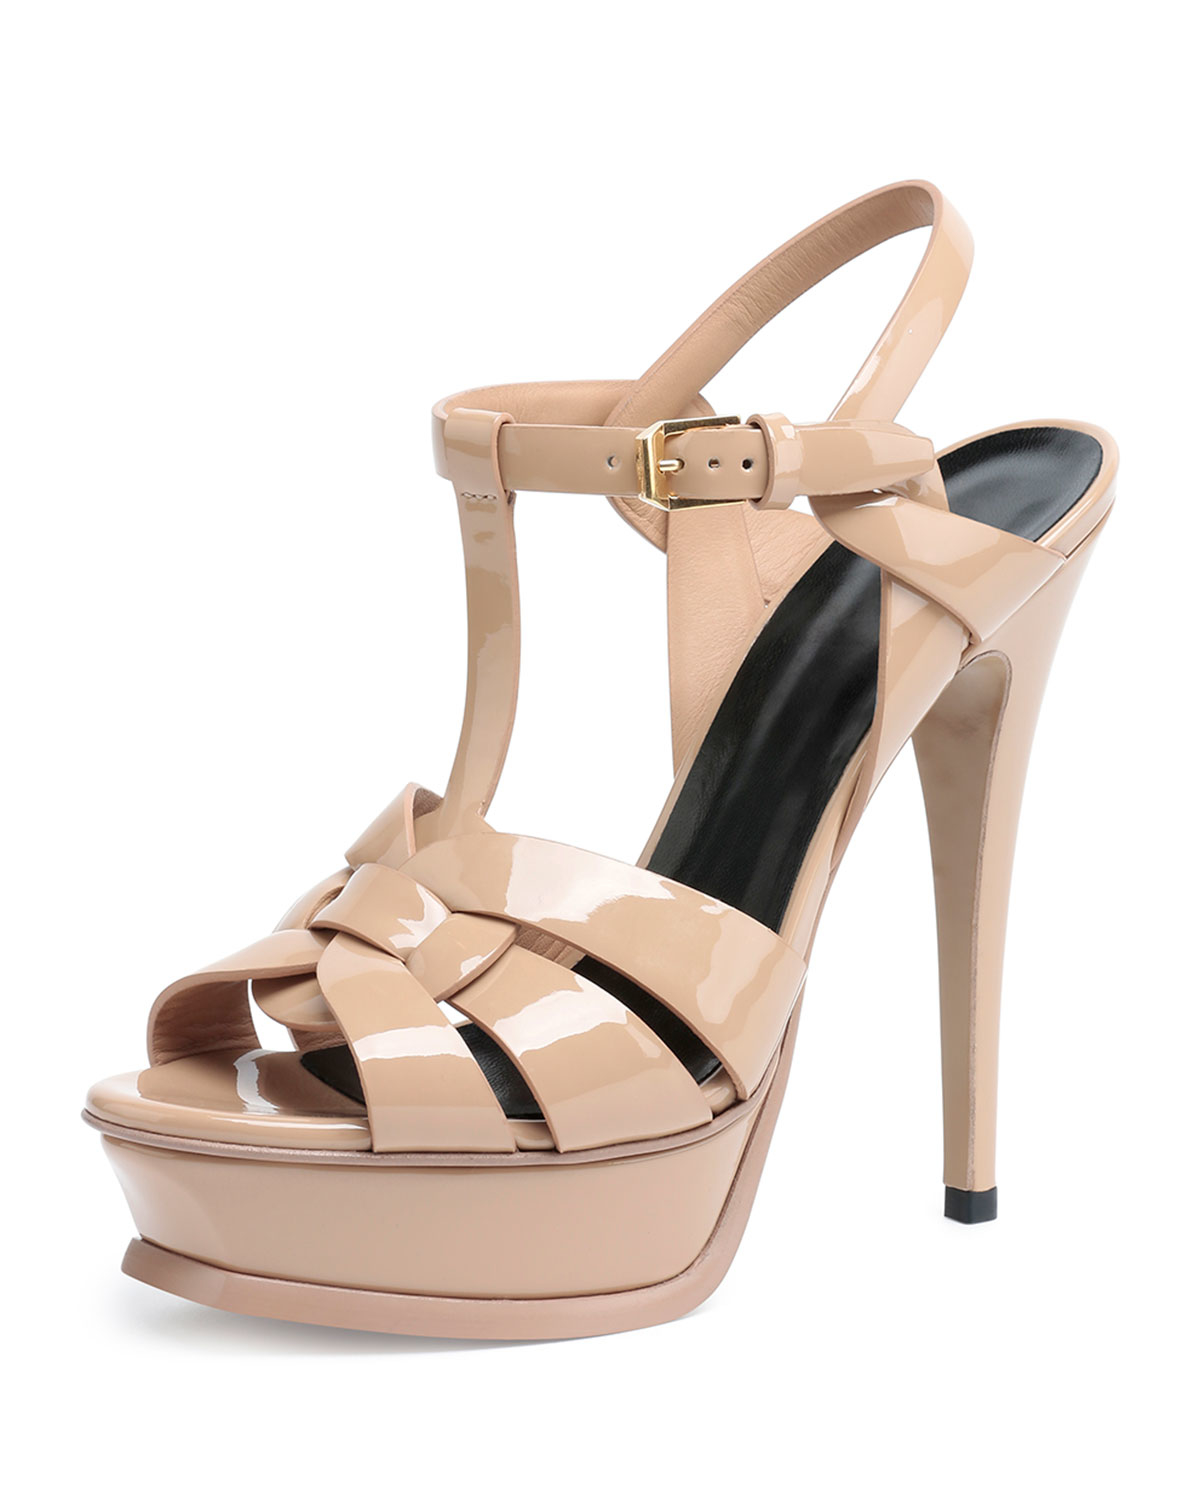 Women S Heeled Platform Sandal   Natural Nude Beige Patent Leather